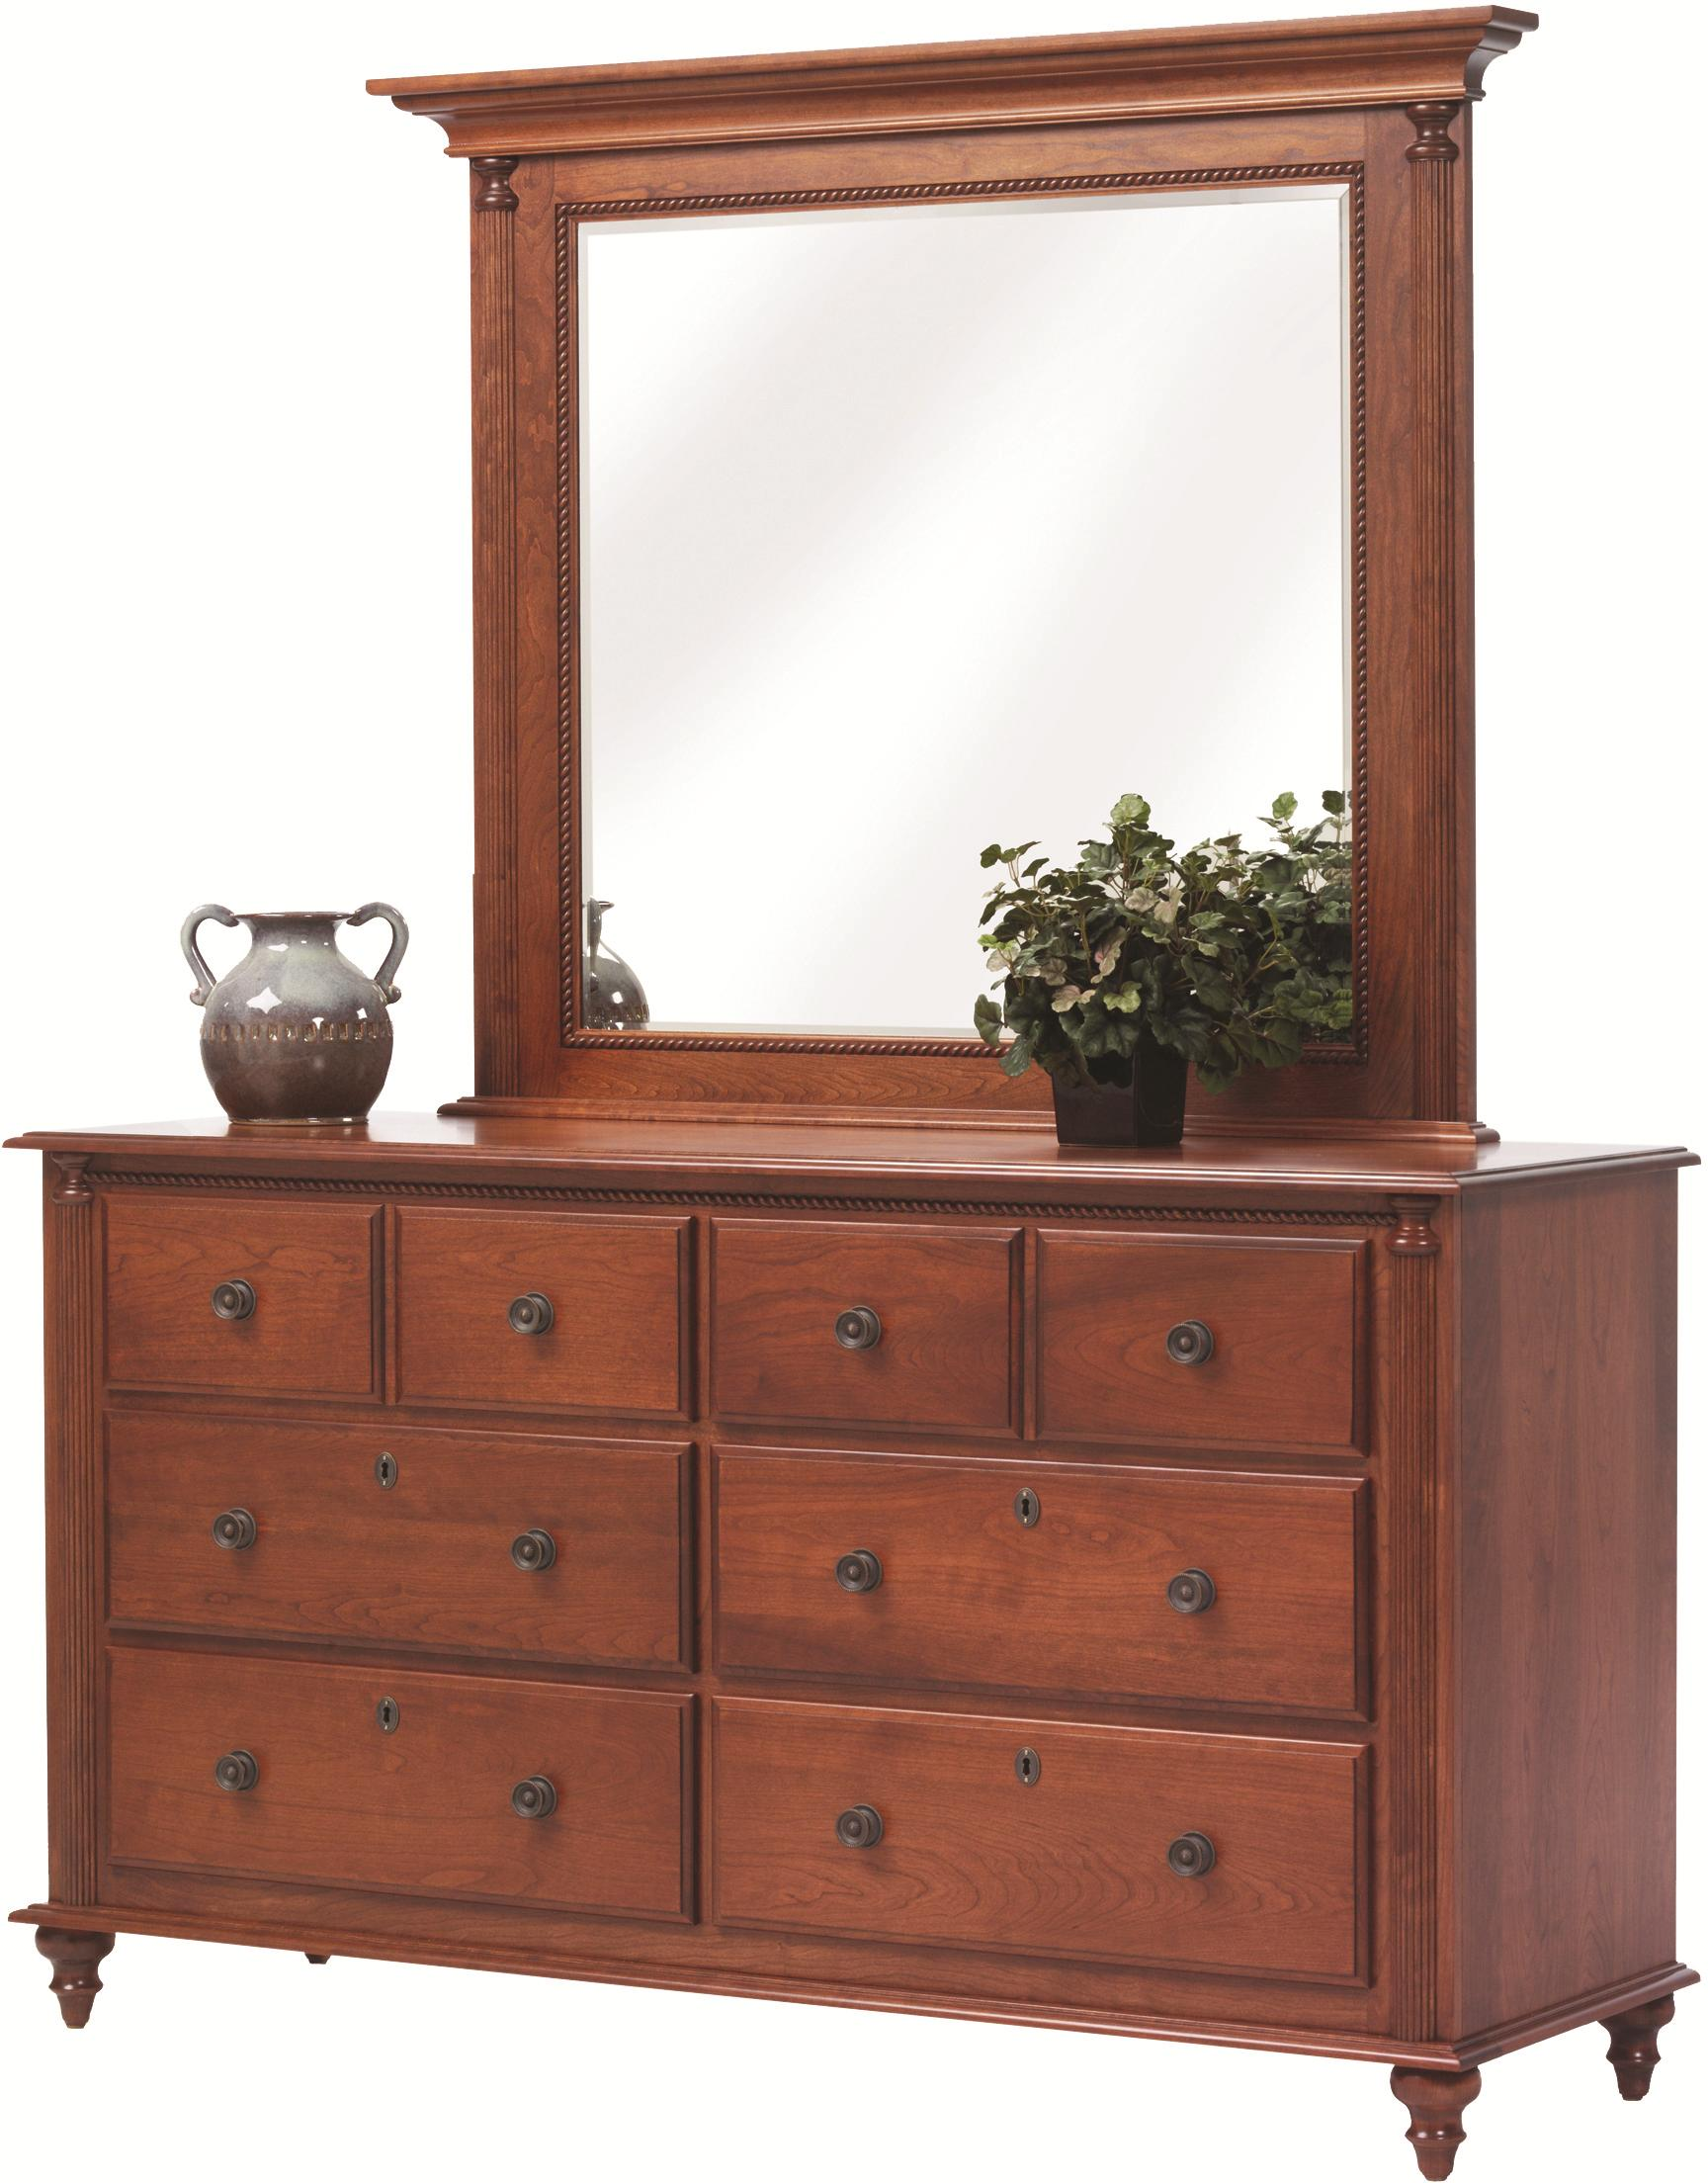 Fur Elise Dresser and Mirror by Millcraft at Saugerties Furniture Mart